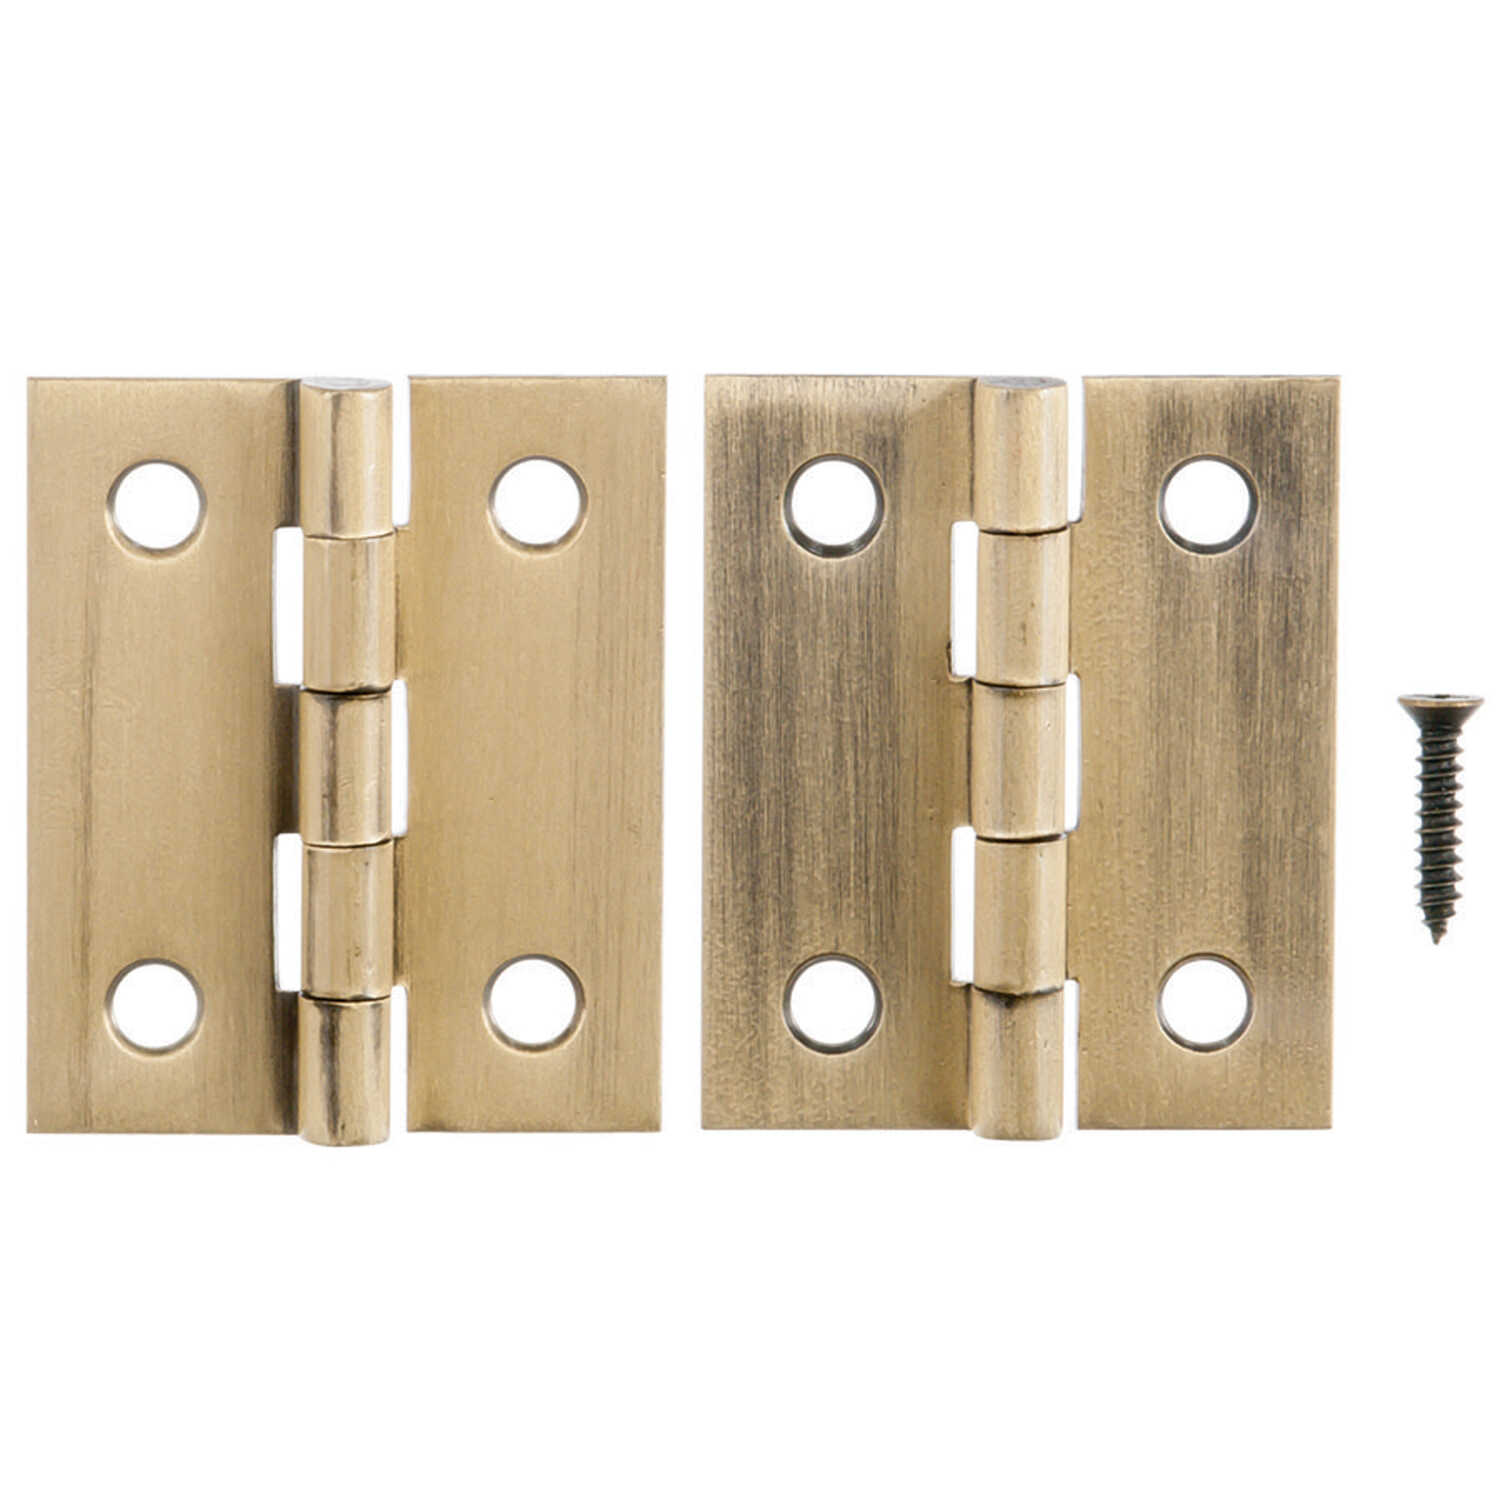 Ace  2.75 in. W x 1-1/2 in. L Antique Brass  Brass  Broad Hinge  2 pk